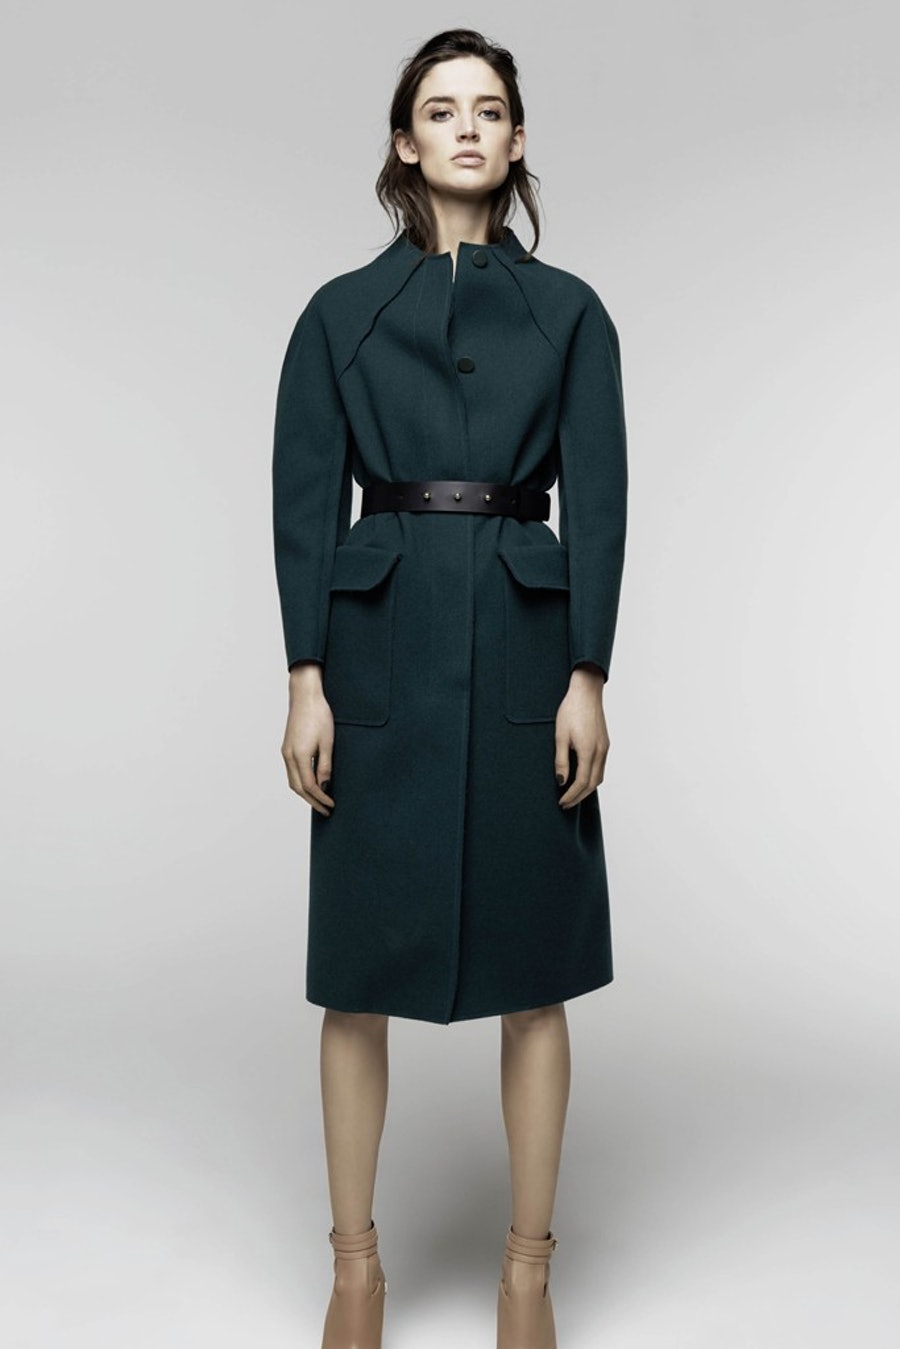 """__Nina Ricci Pre-Fall 2014__       """"I'd love to add this beautifully structured, emerald green coat to my collection."""" - Karla Martinez de Salas"""